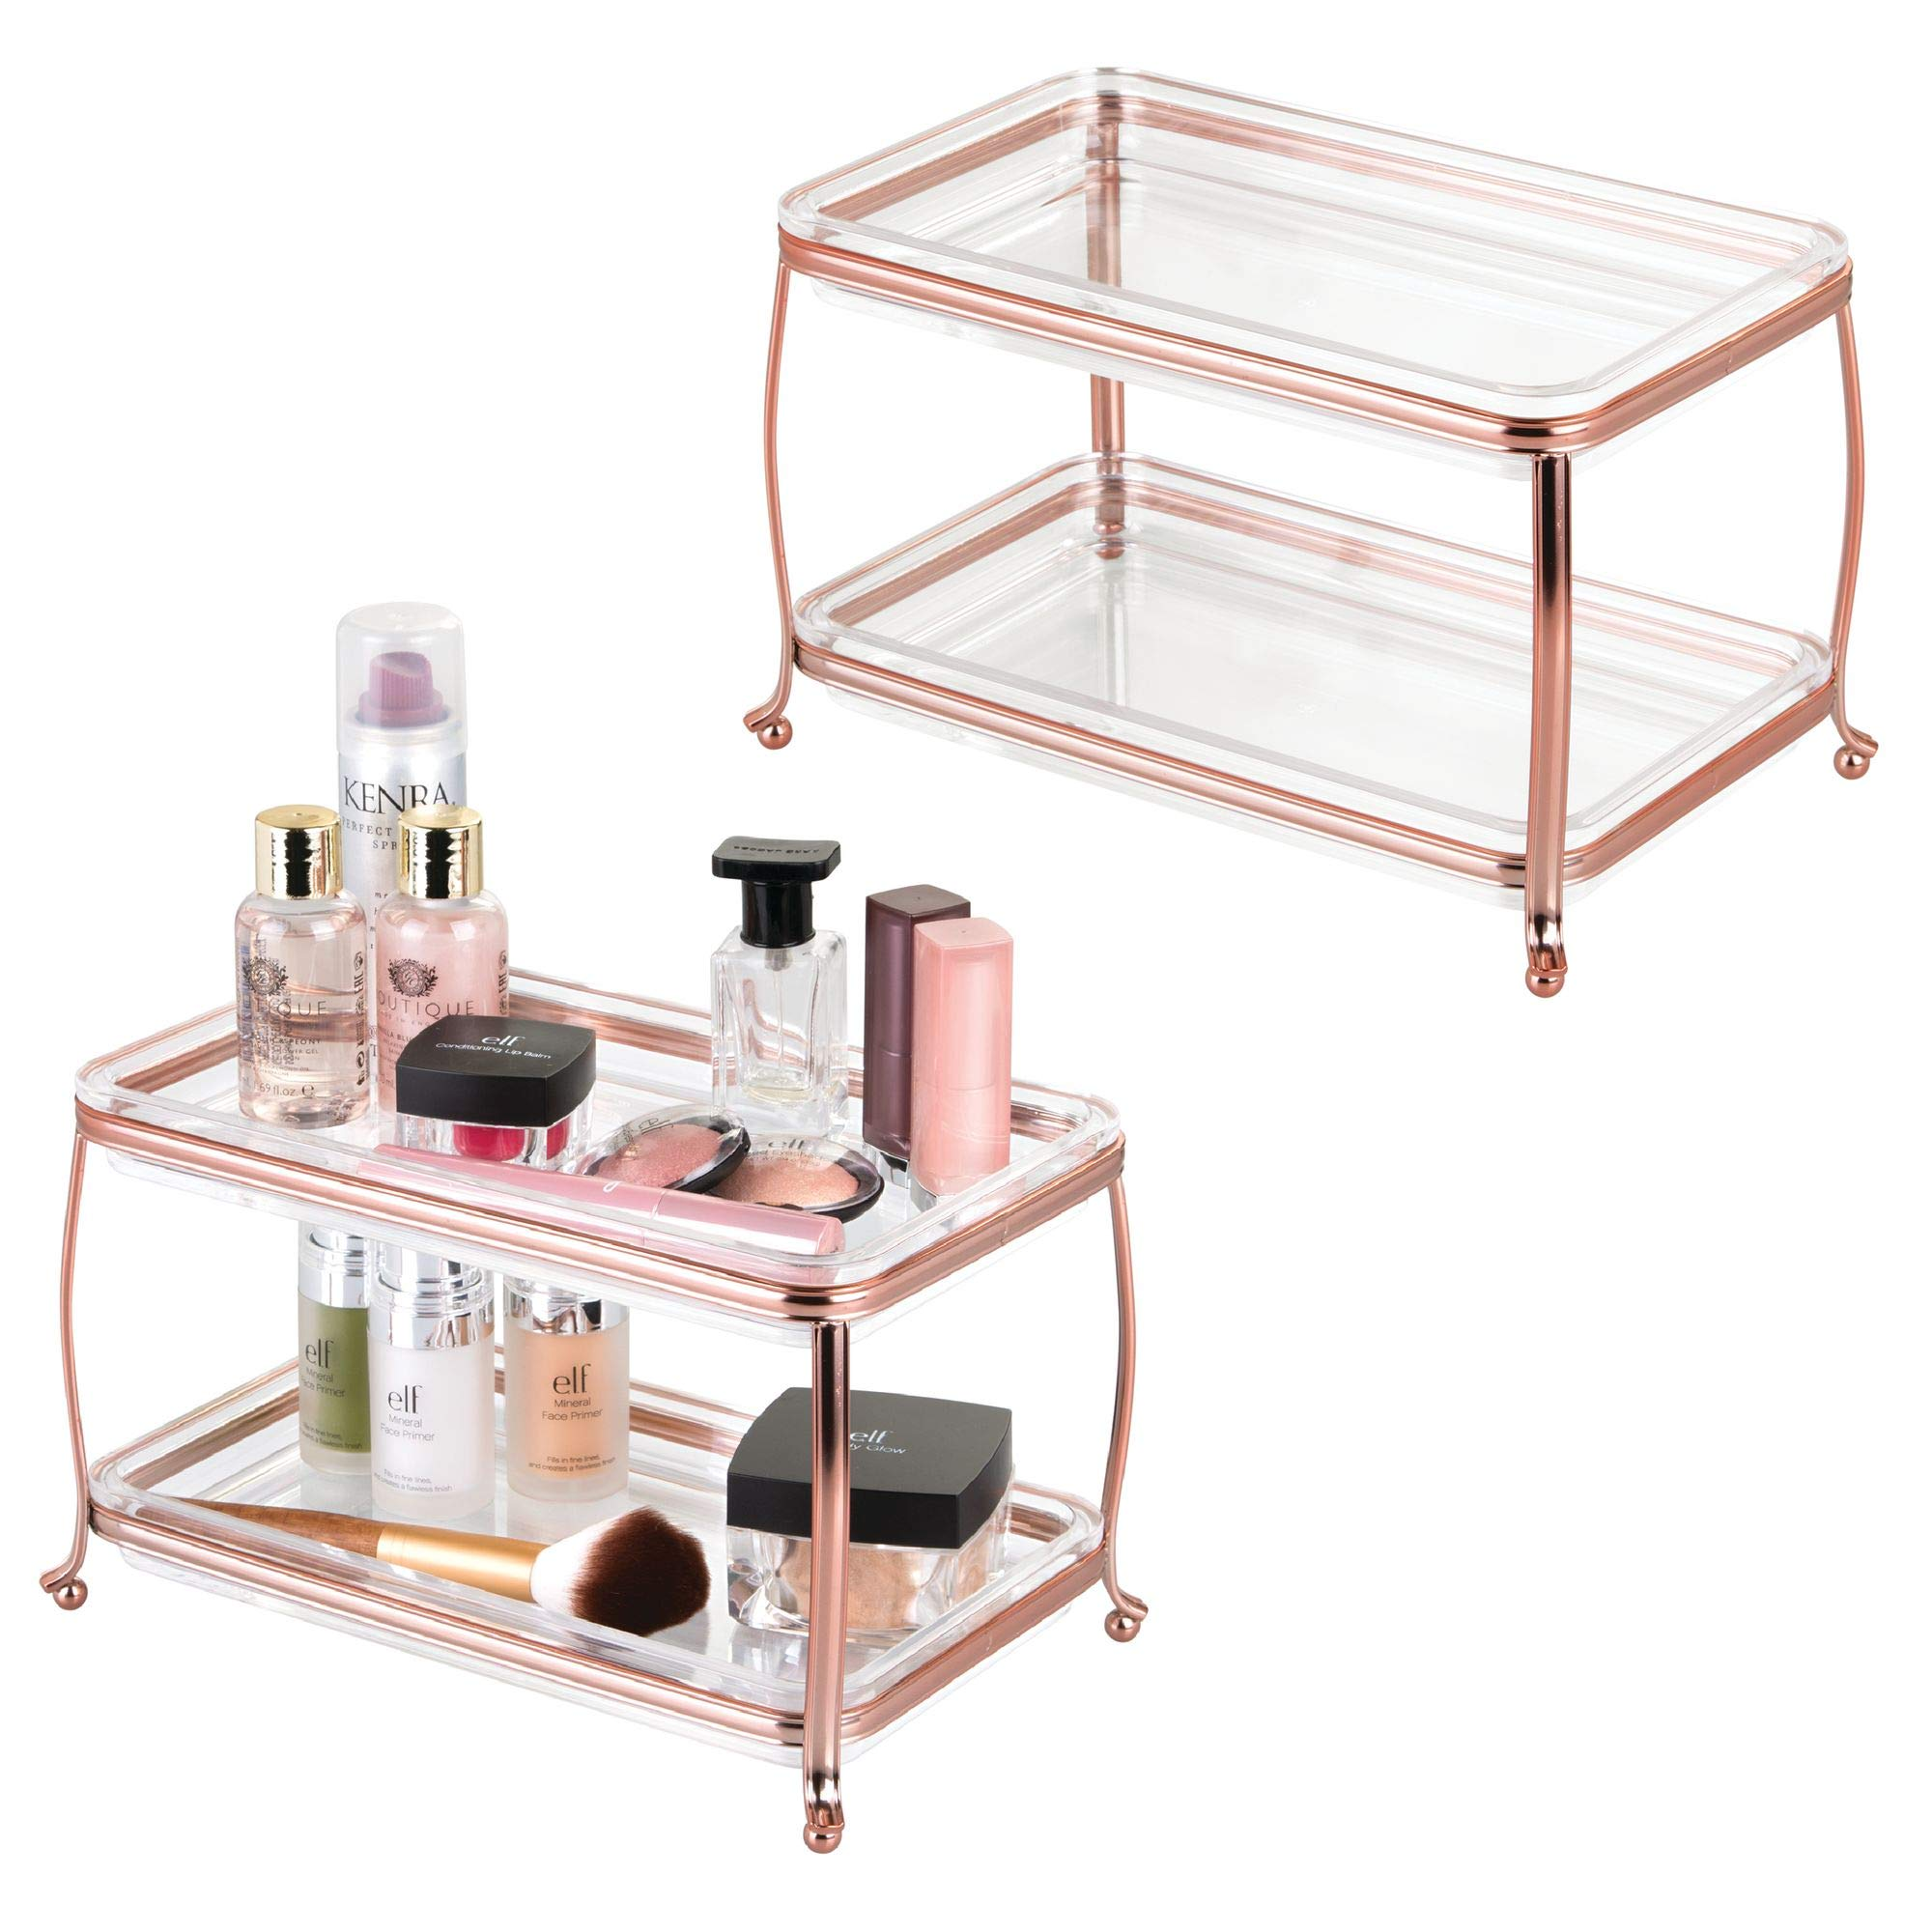 mDesign Decorative Makeup Storage Organizer Vanity Tray for Bathroom Counter Tops, 2 Levels to Hold Makeup Brushes, Eyeshadow Palettes, Lipstick, Perfume and Jewelry - Pack of 2, Rose Gold/Clear